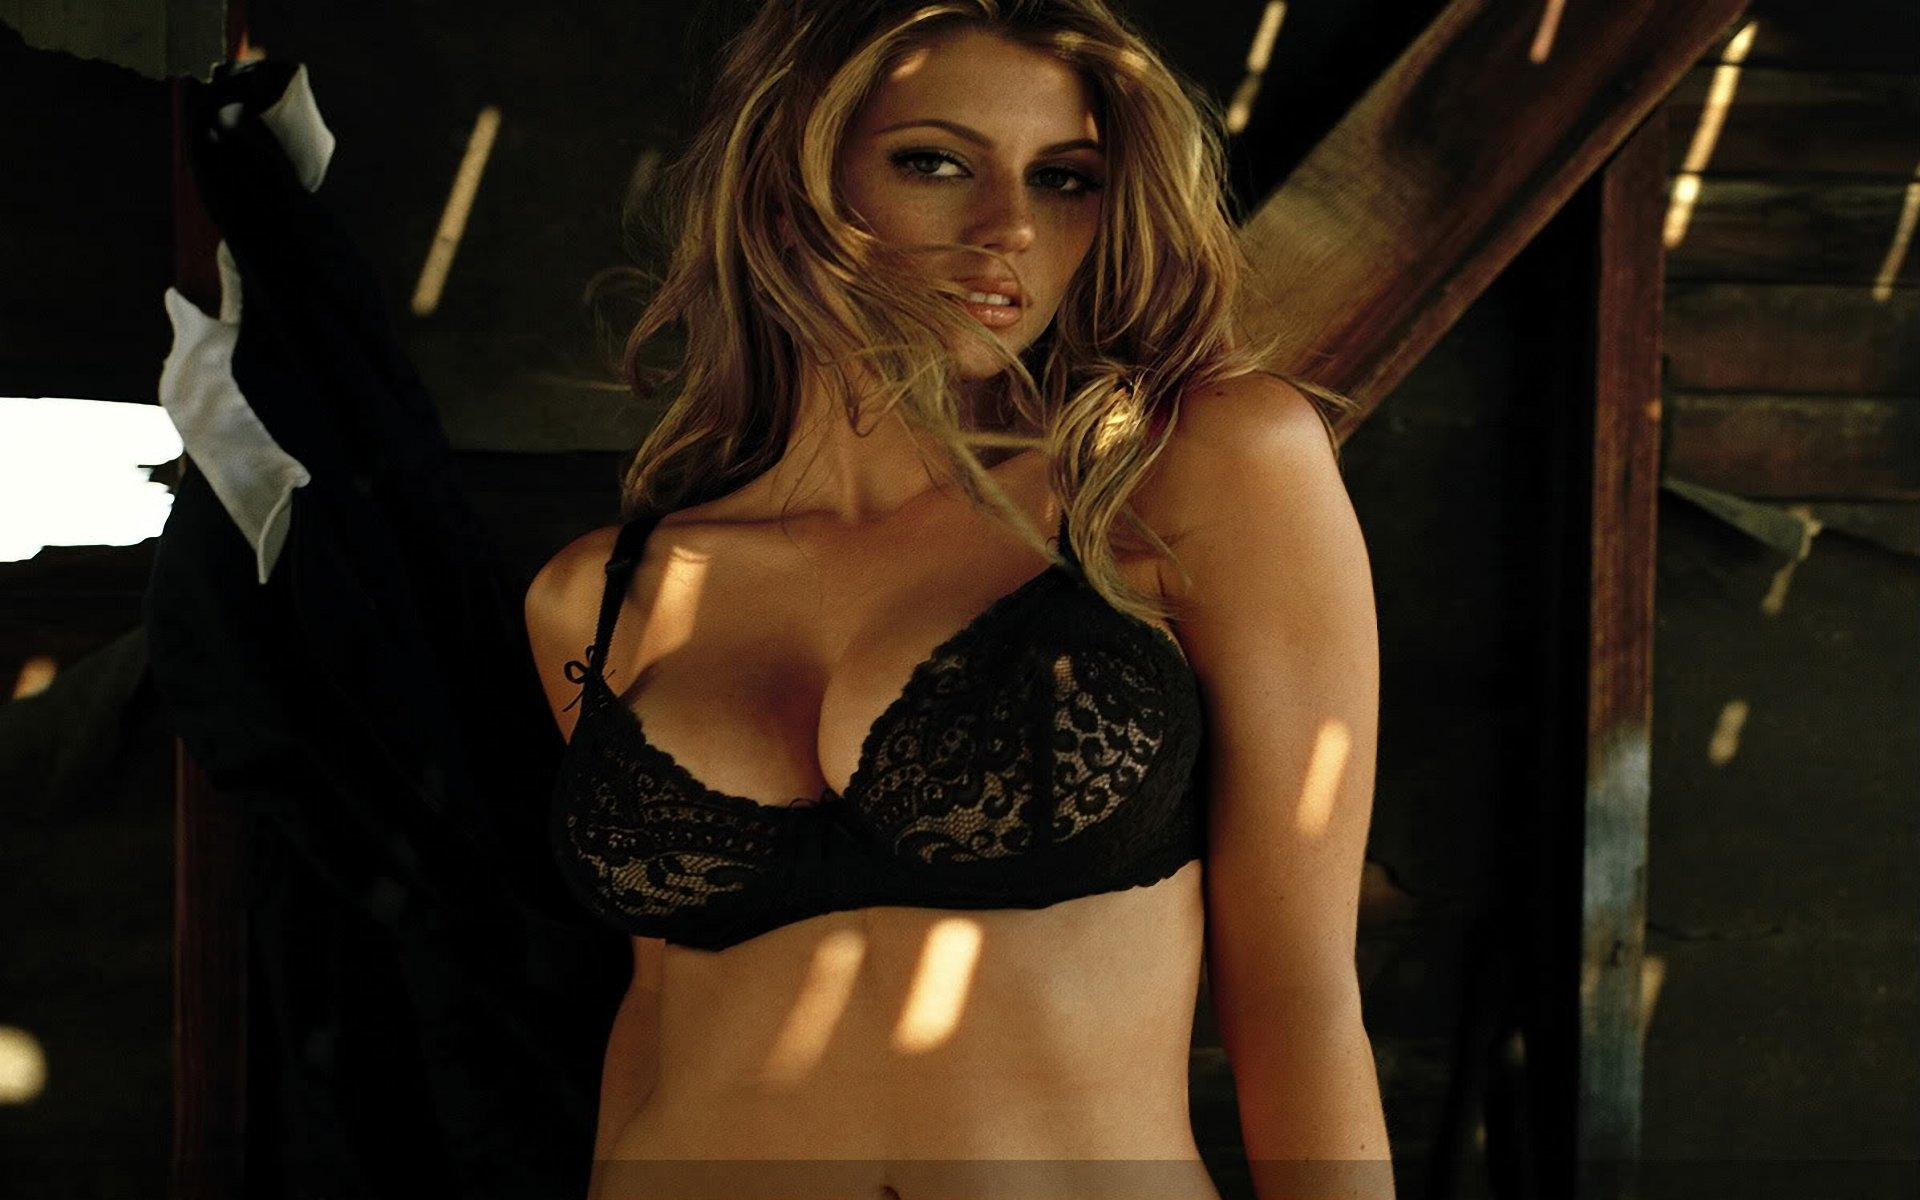 diora baird pic wallpapers - photo #2